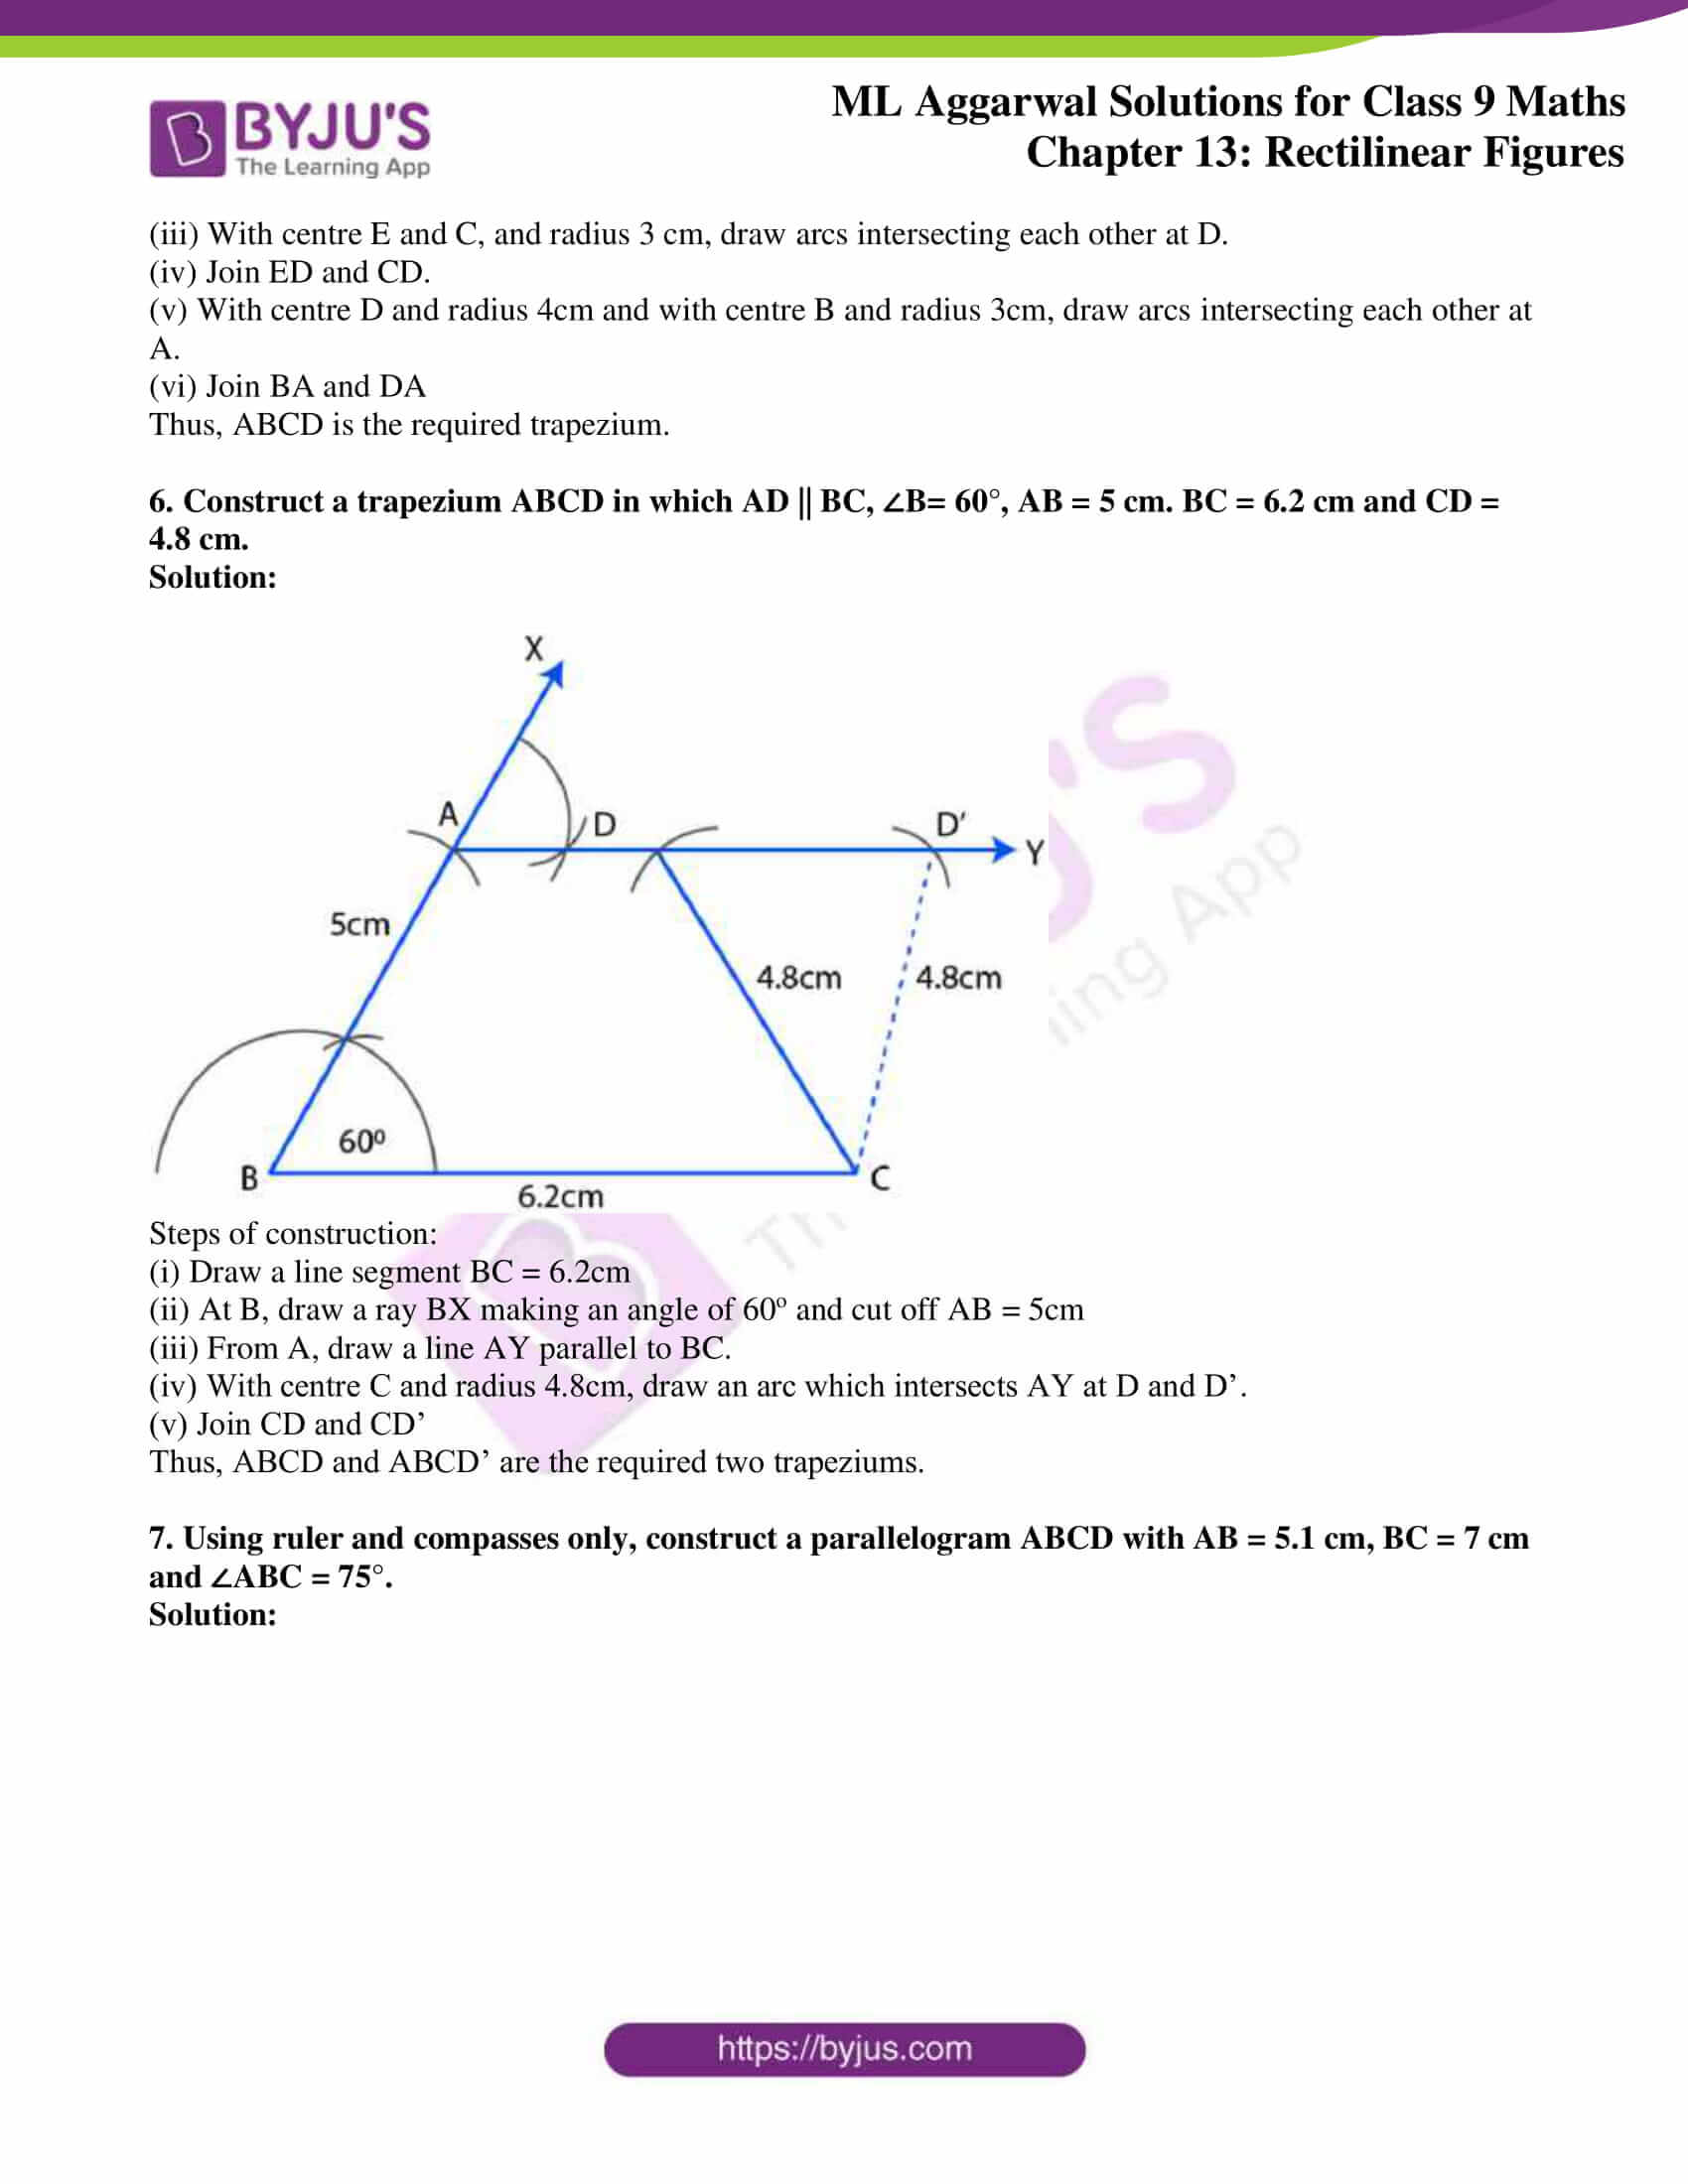 ml aggarwal solutions for class 9 maths chapter 13 27